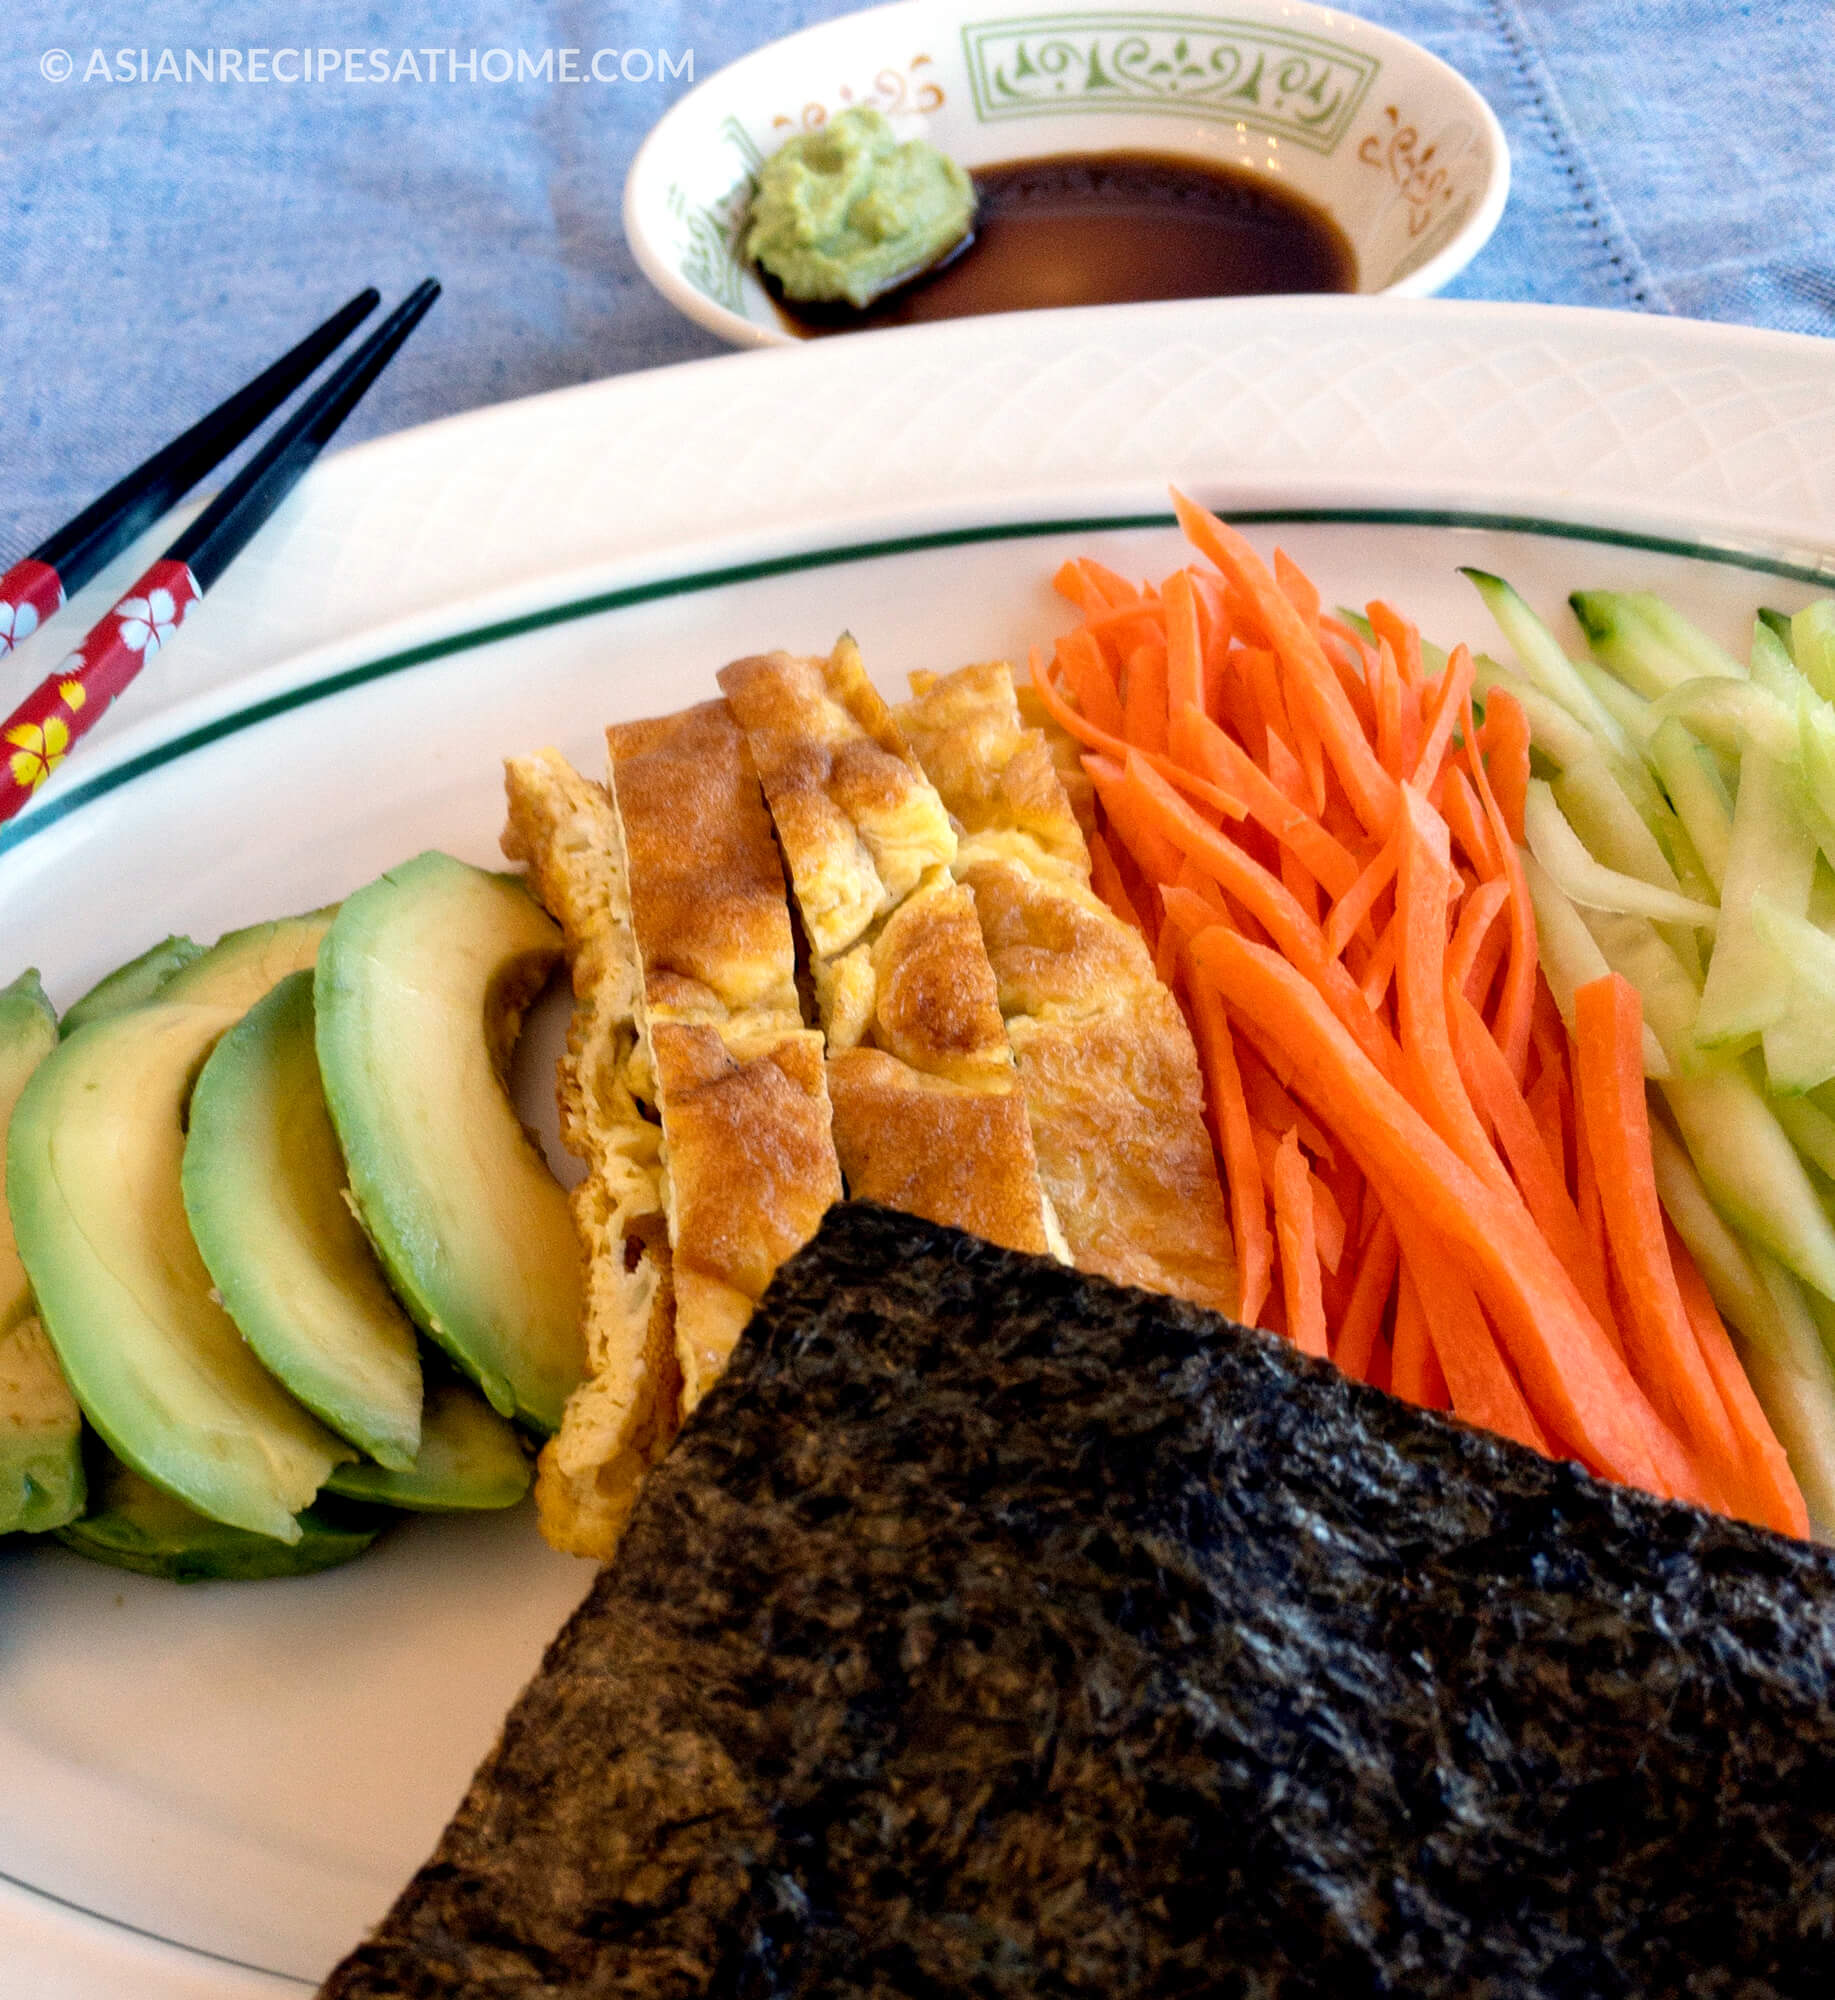 Nori wraps with eggs, avocado, and fresh vegetables is a quick and easy way to whip up a fresh and healthy meal or snack.